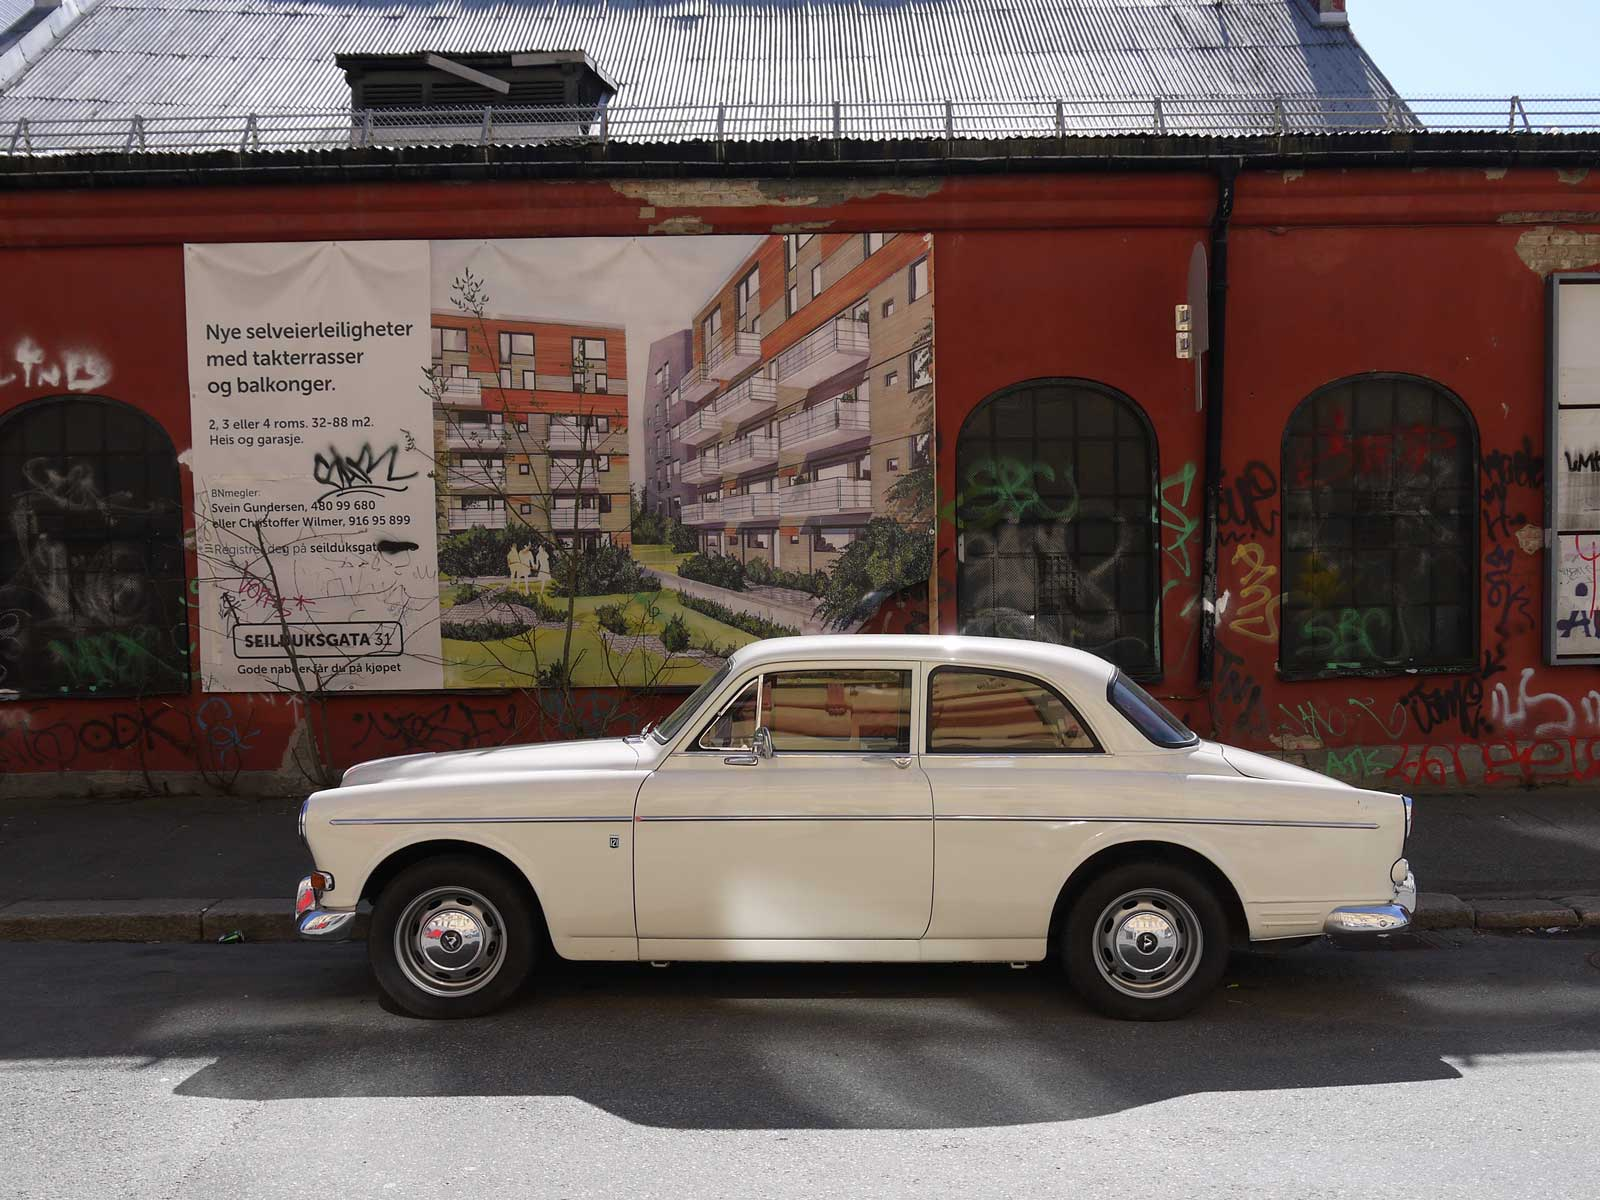 1968 Volvo Amazon 120 121 Classic cars Norway